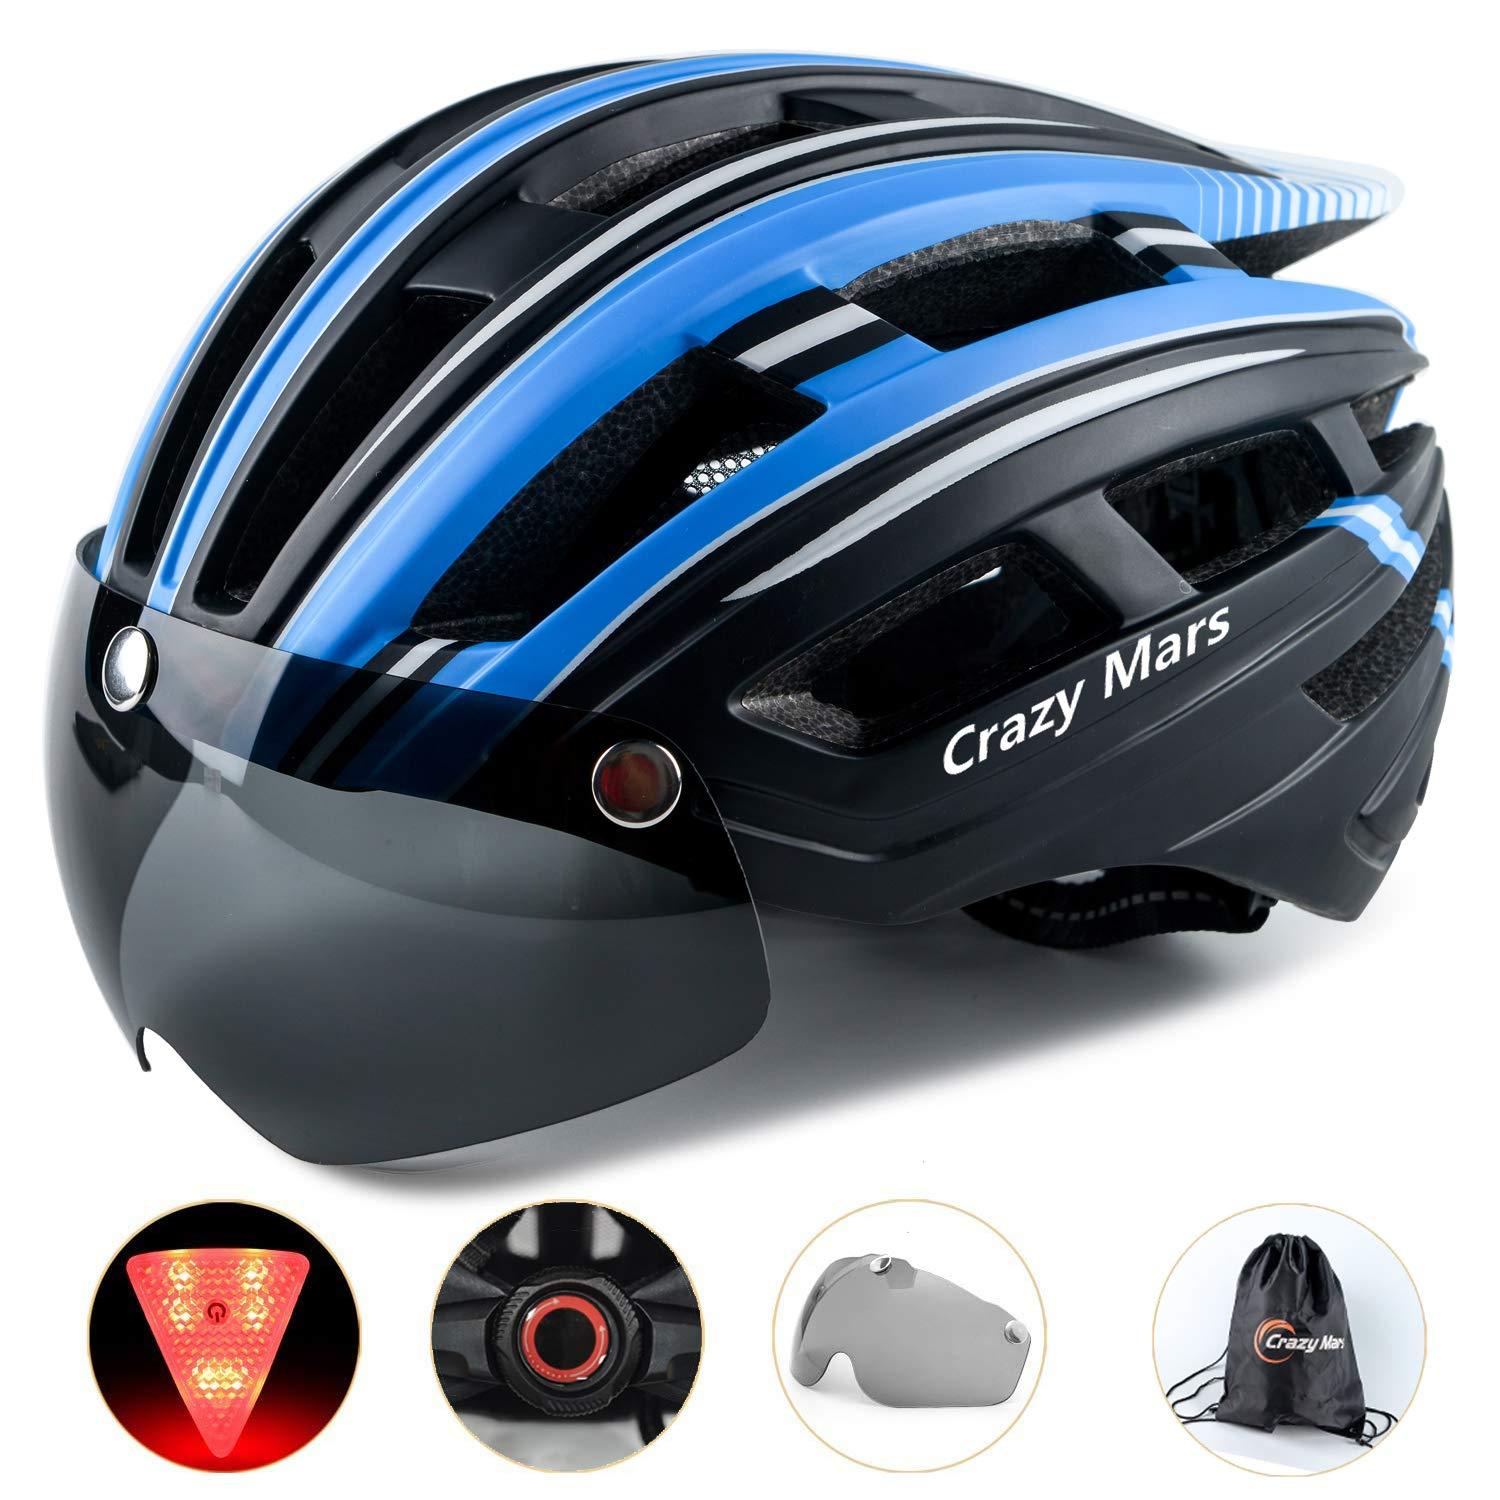 Crazy Mars Adult Bike Helmet with Light and Magnatic Goggle Visor Bicycle MTB BMX Helmet Men Women Adjustable